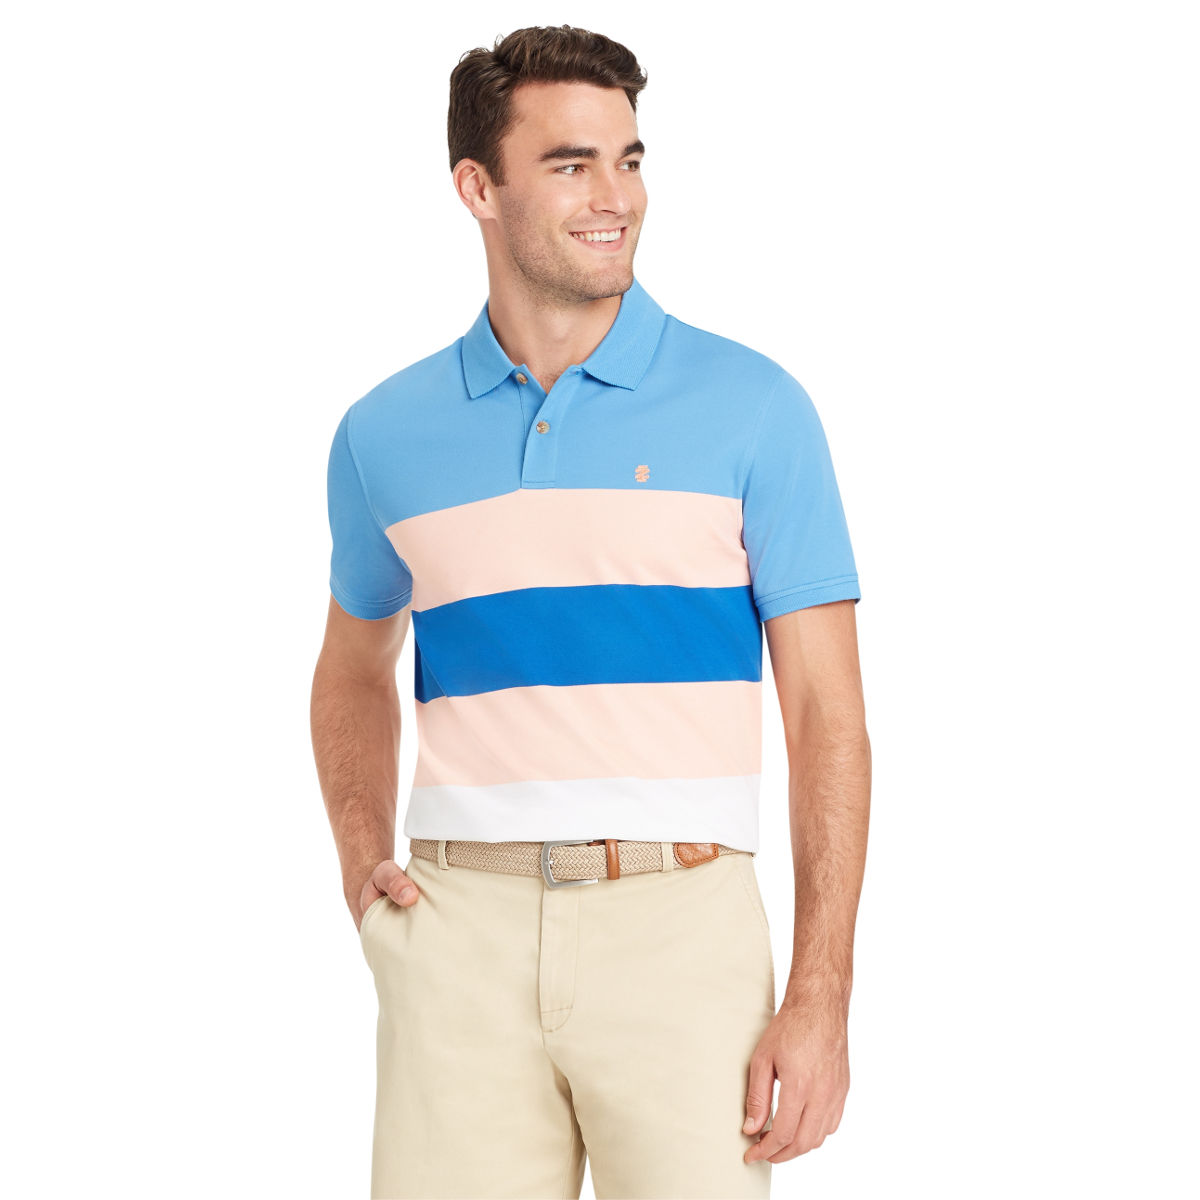 Izod Men's Advantage Performance Colorblock Stripe Short-Sleeve Polo Shirt - Orange, XL